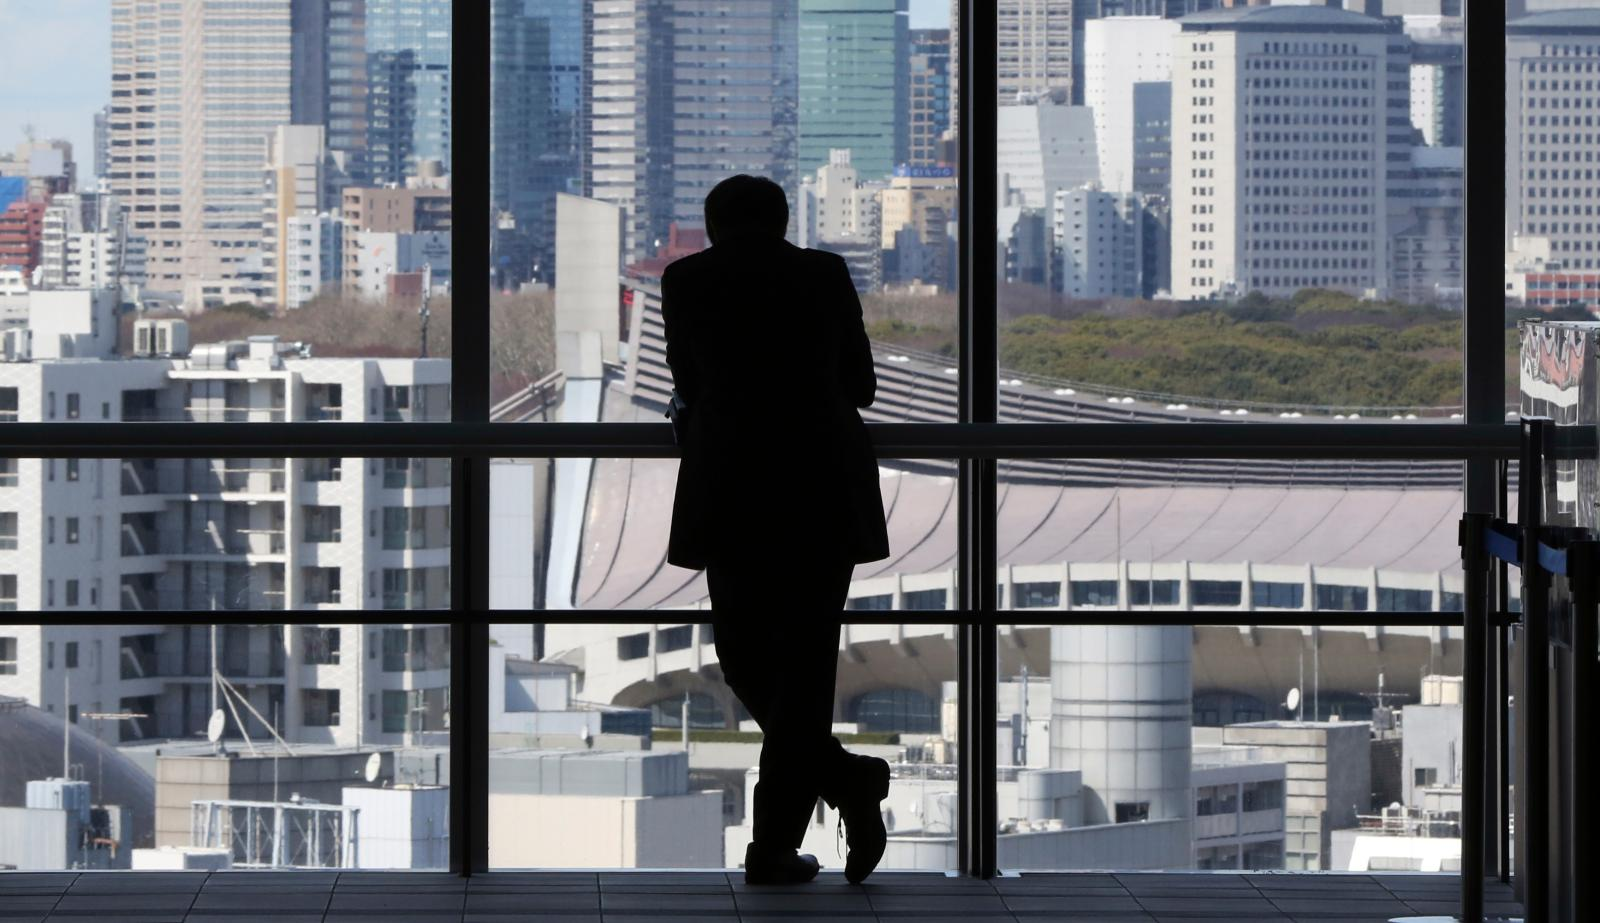 A silhouette of a man in an office